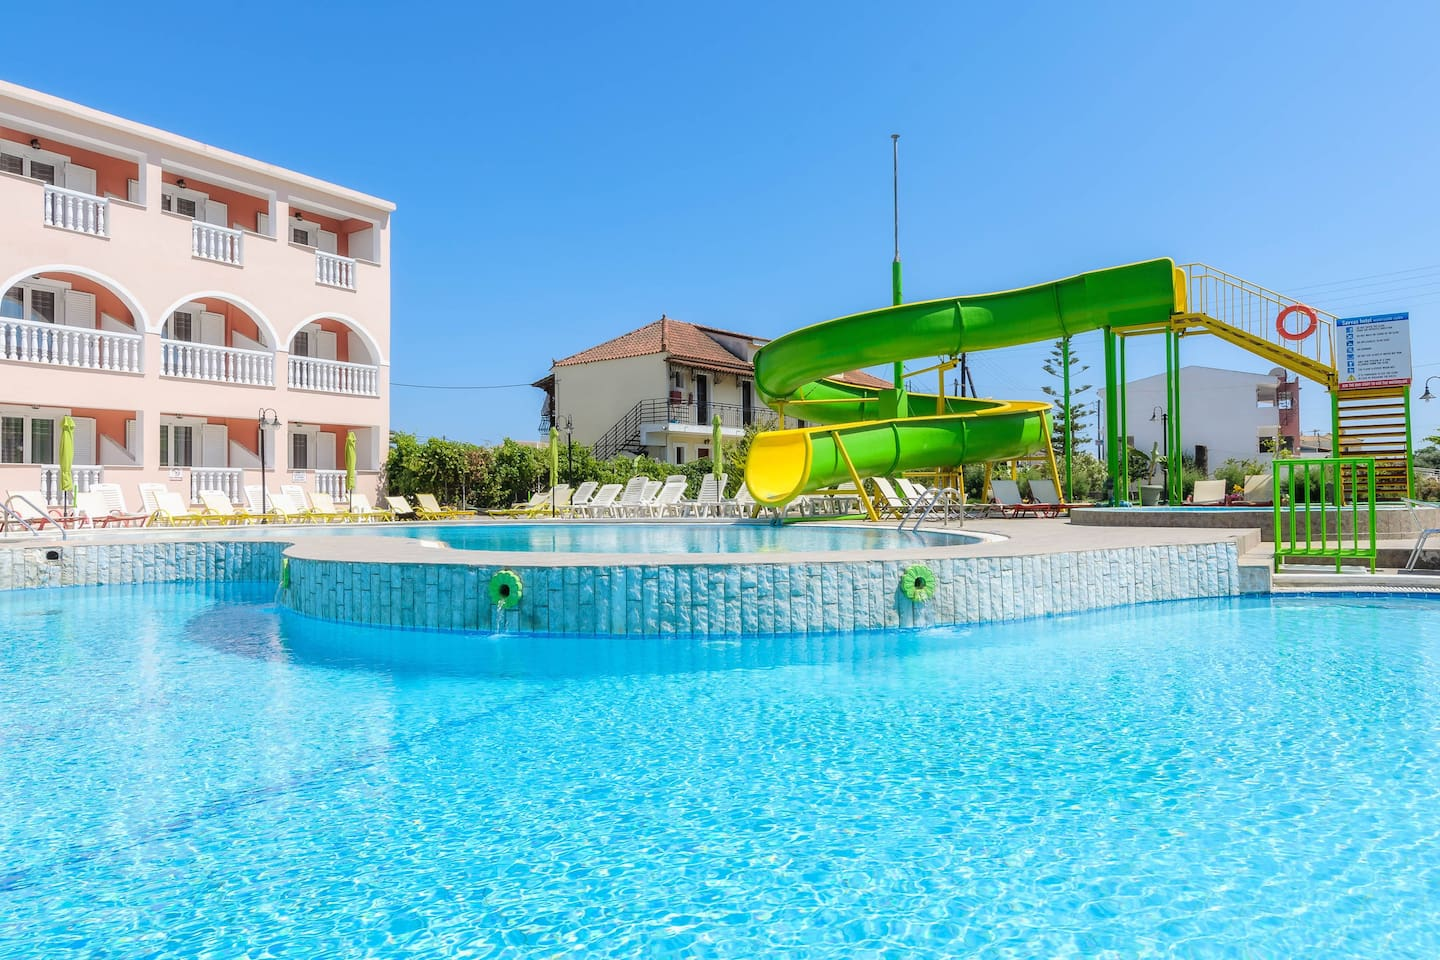 Waterslide and pool area